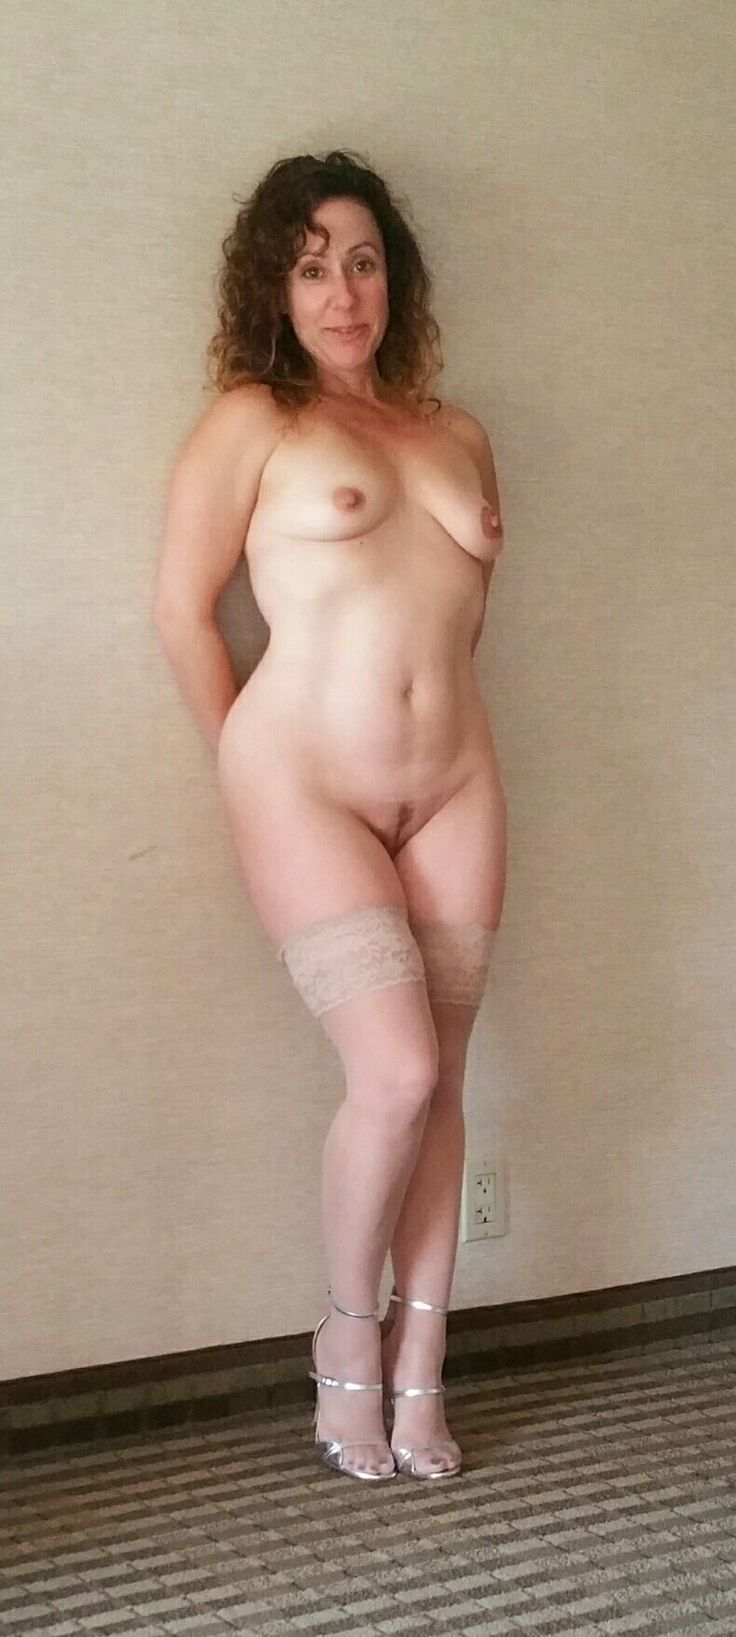 36 best sexy milf images on pinterest | sexy, curves and curvy women